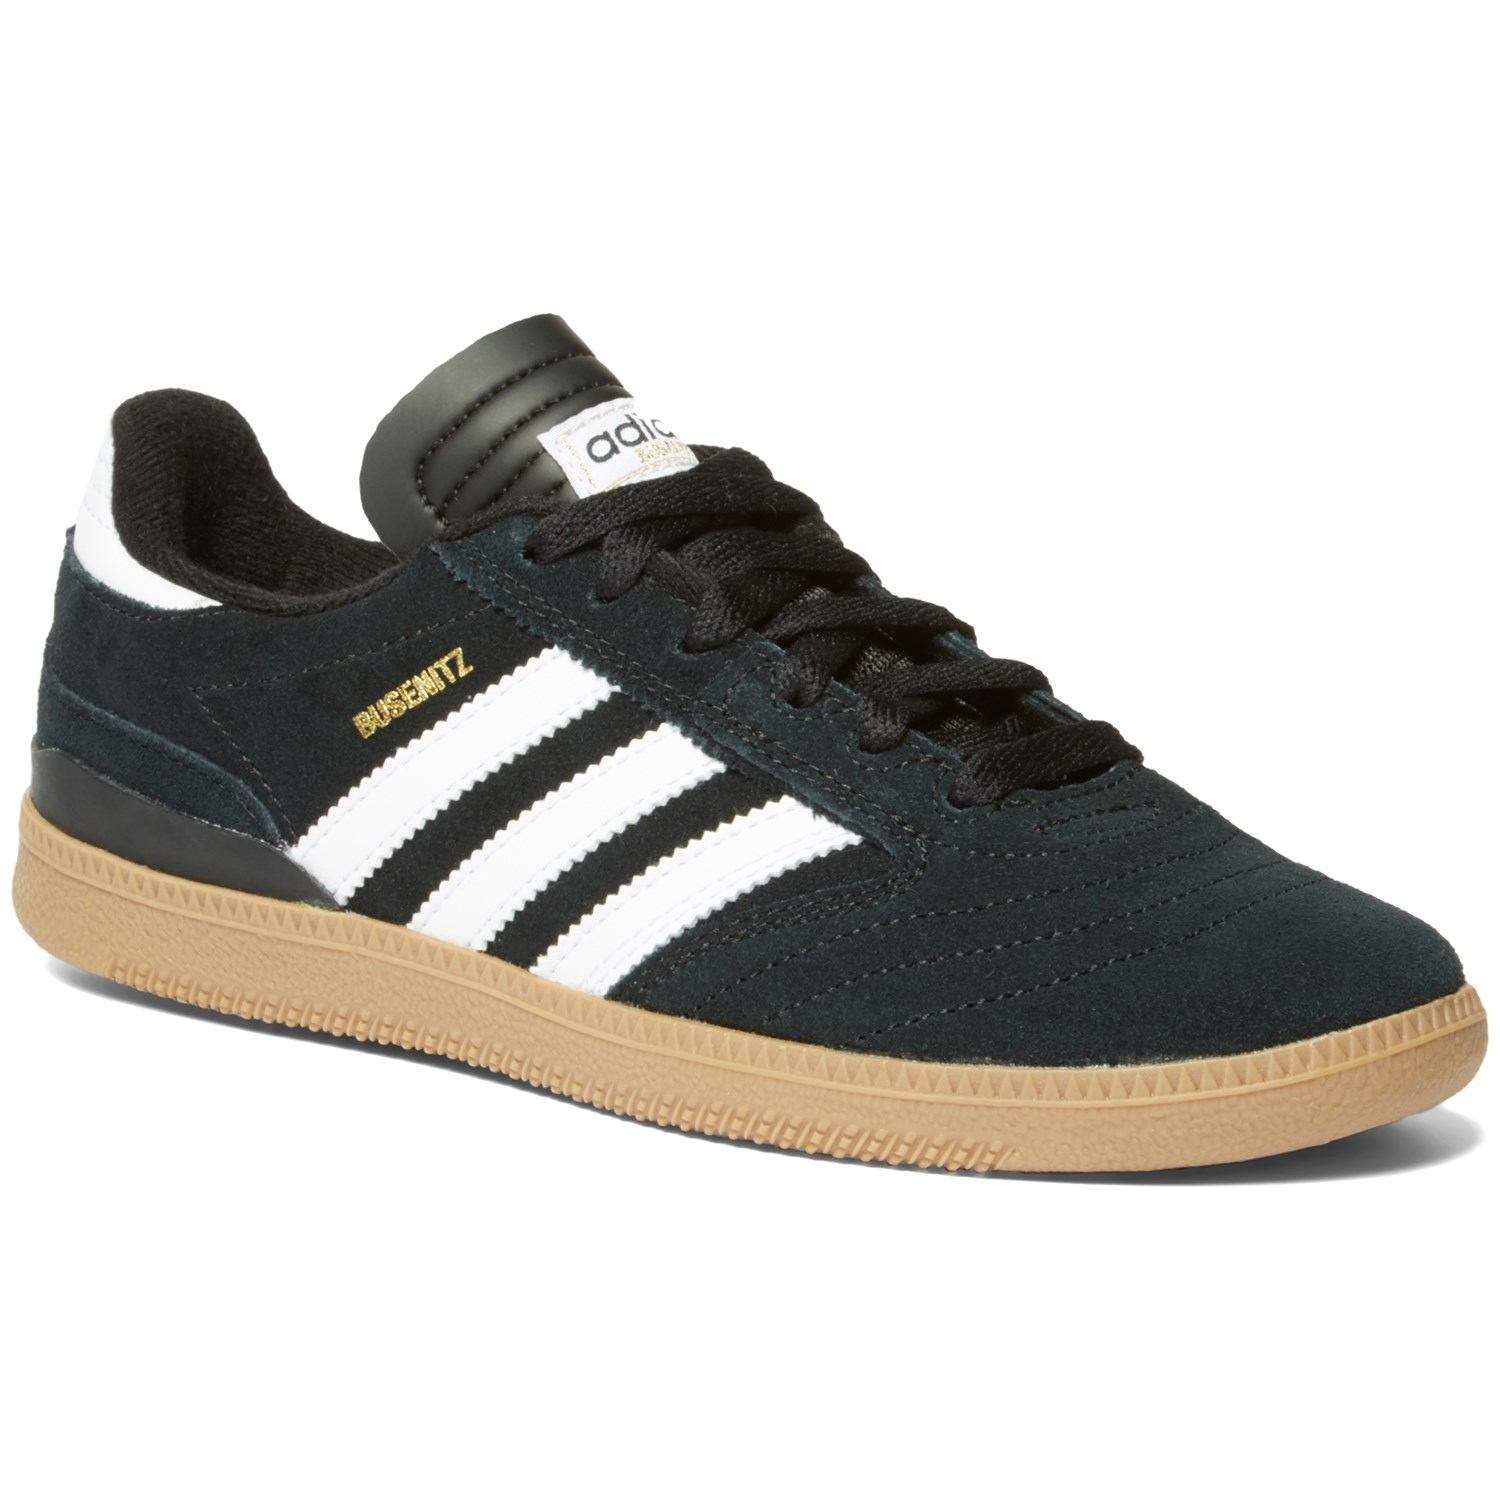 3e0bb13ddefe Buy adidas kids shoes   OFF64% Discounted